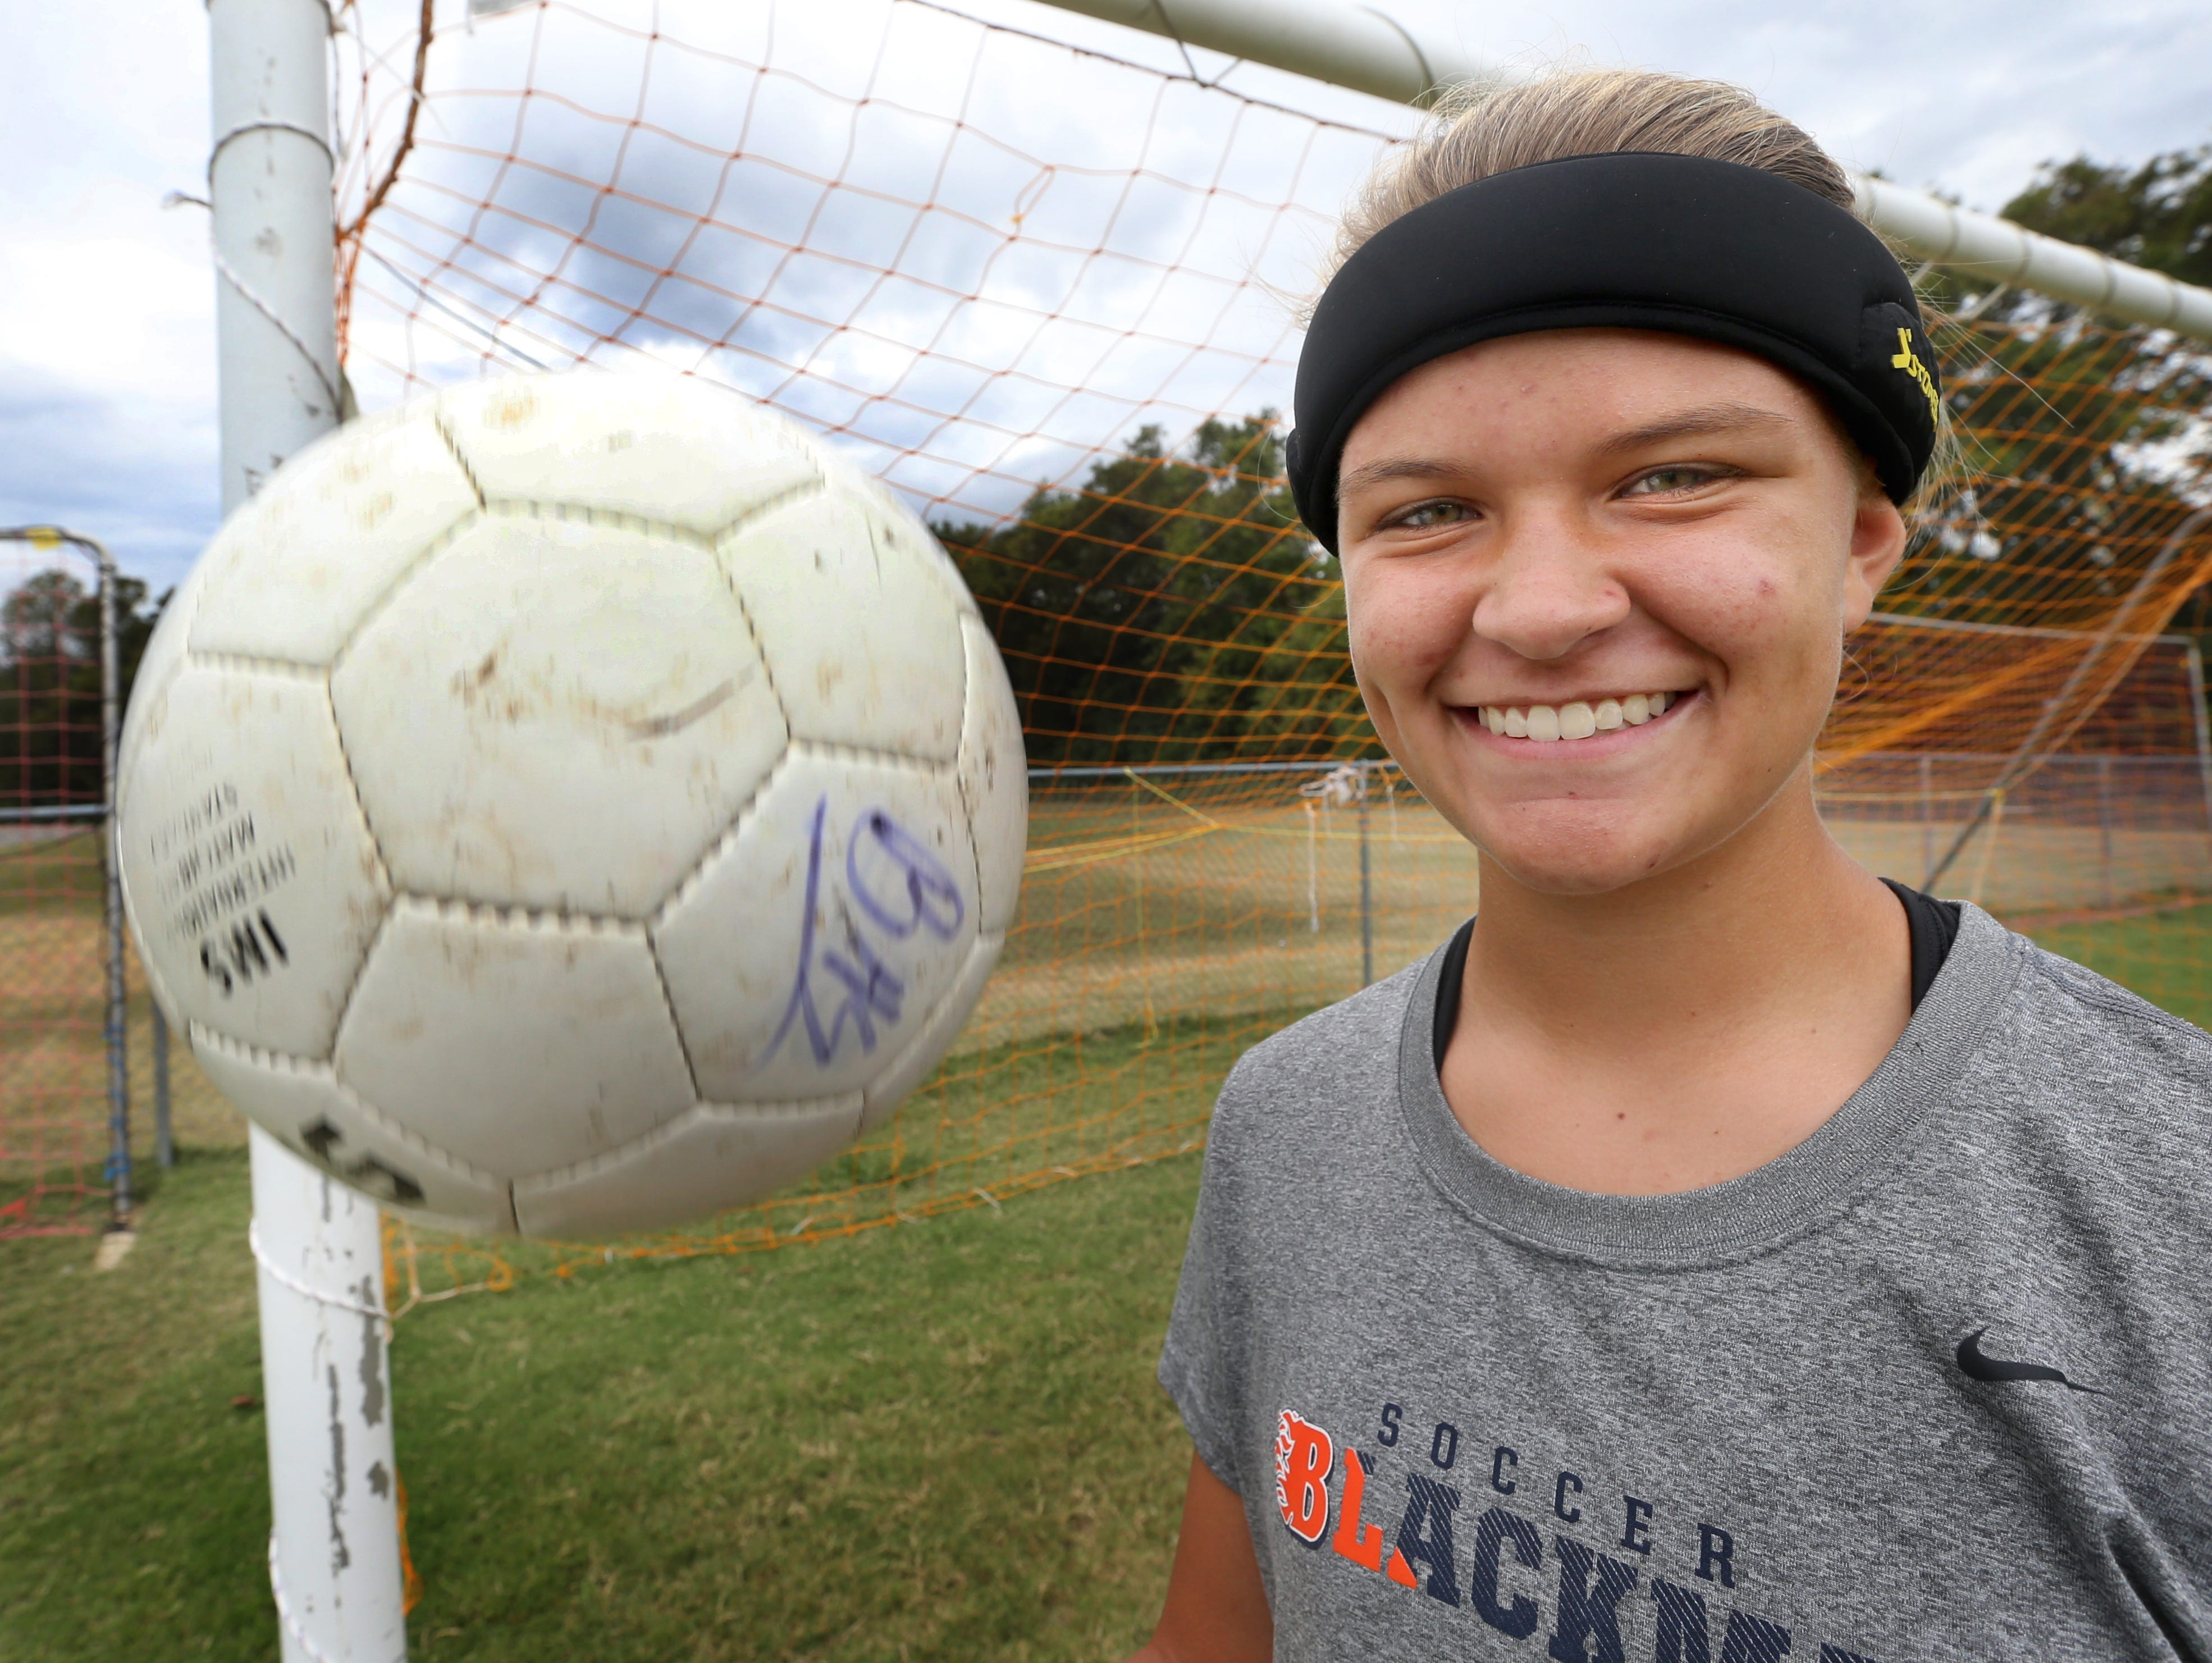 Blackman's Kenzi Vetter, a sophomore, models the headband that all Blackman girls soccer players must wear before getting on the field for either a game or practice, on Monday, Sept. 28, 2015, before a game against Smyrna. The headbands are suppose to lessen the chances of receiving a concussion.